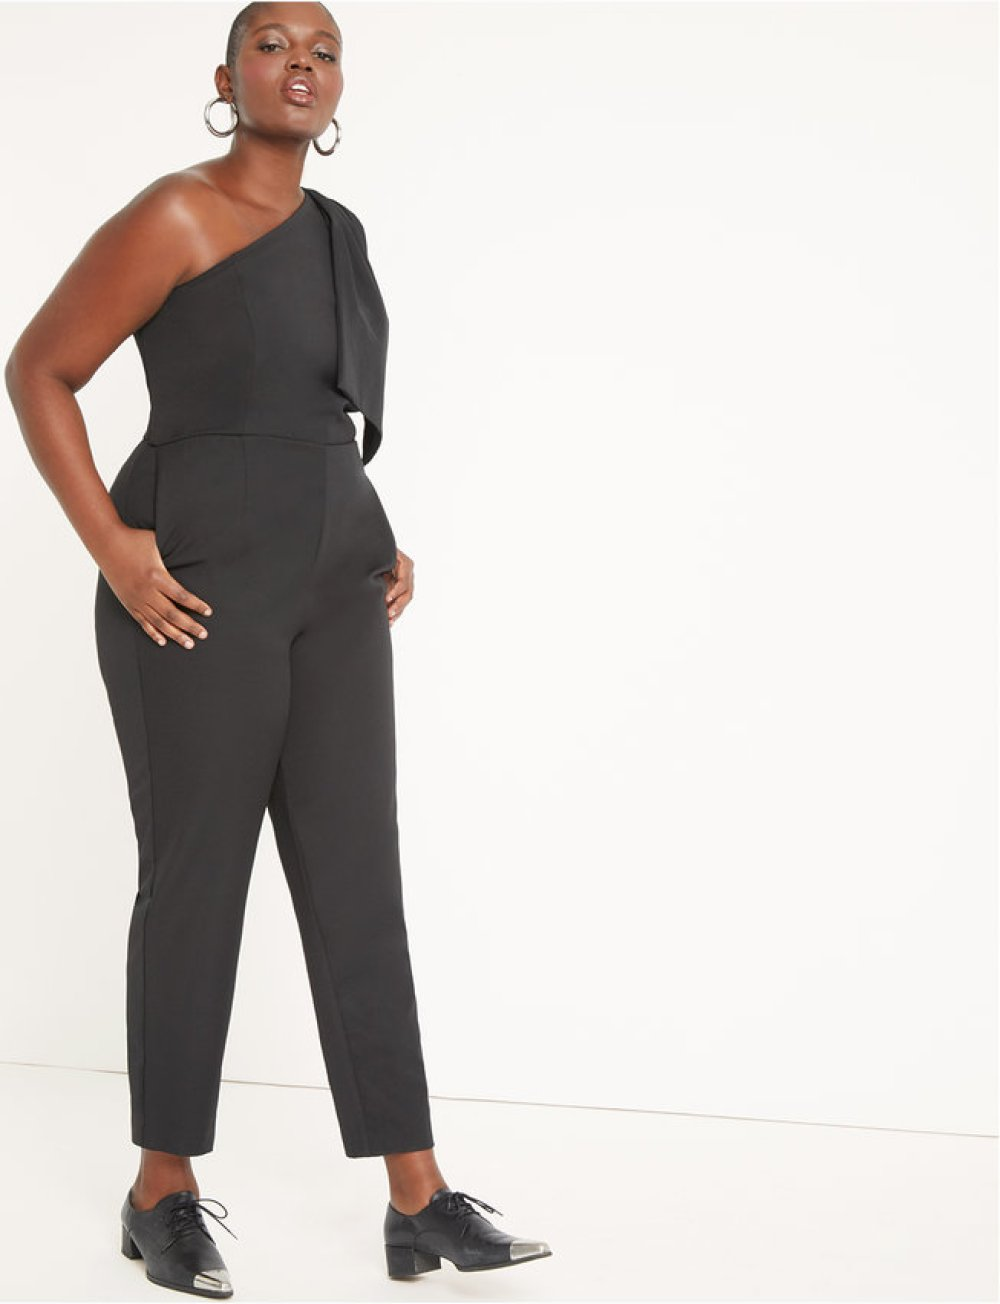 plus size jumpsuit, plus size fashion, plus size blogger